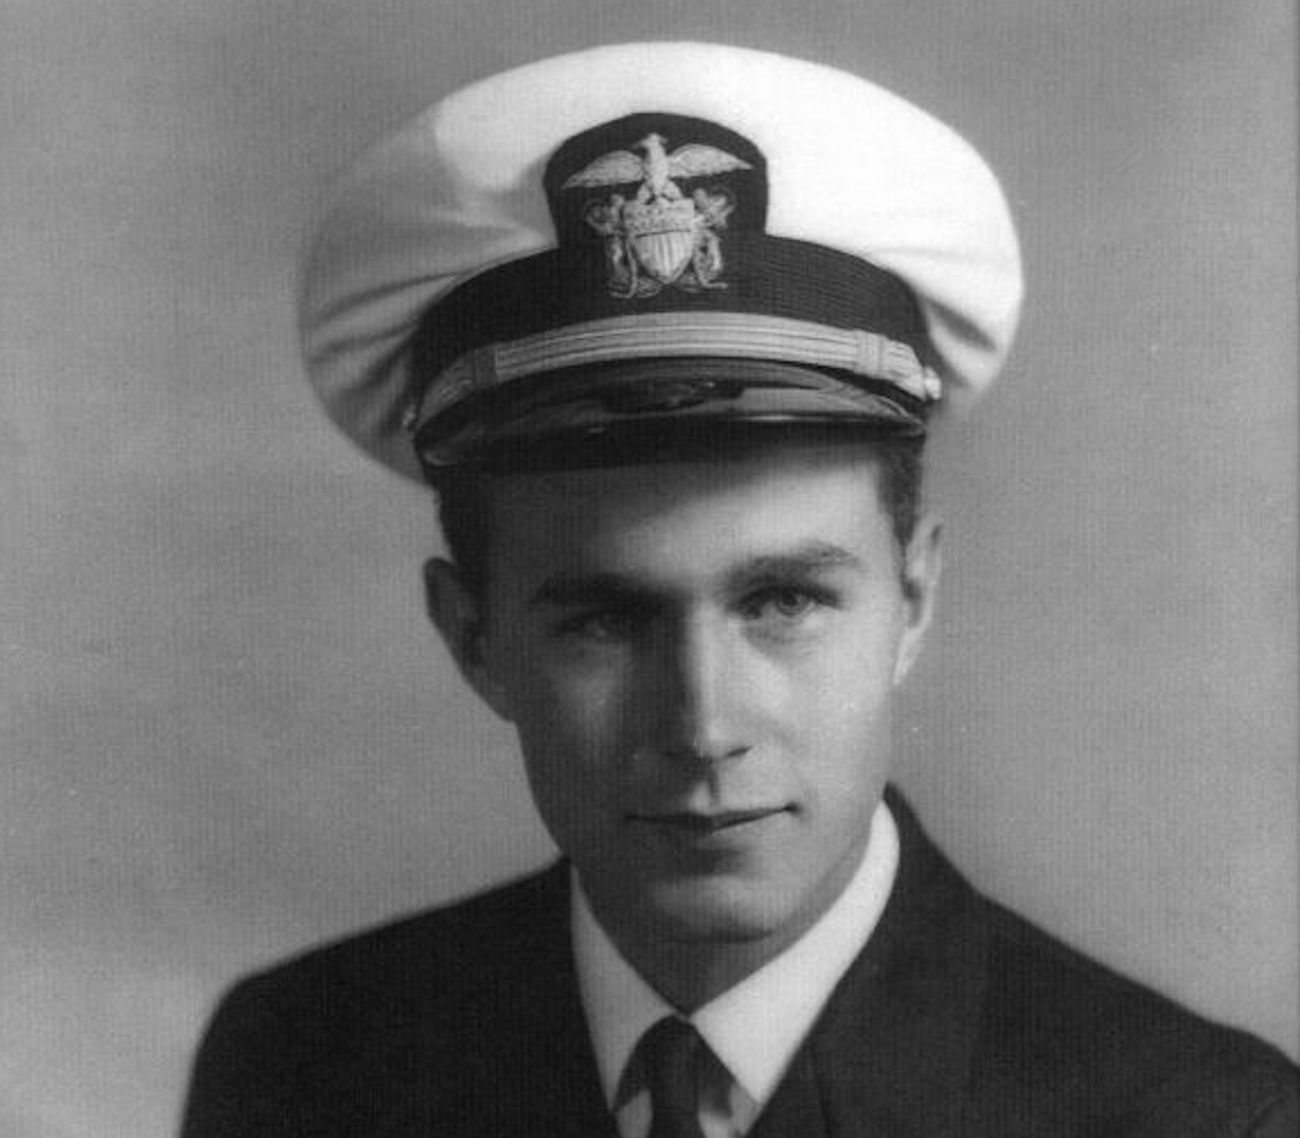 George H. W. Bush, United States Navy Portrait. Image credit: George Bush Presidential Library and Museum / Public domain